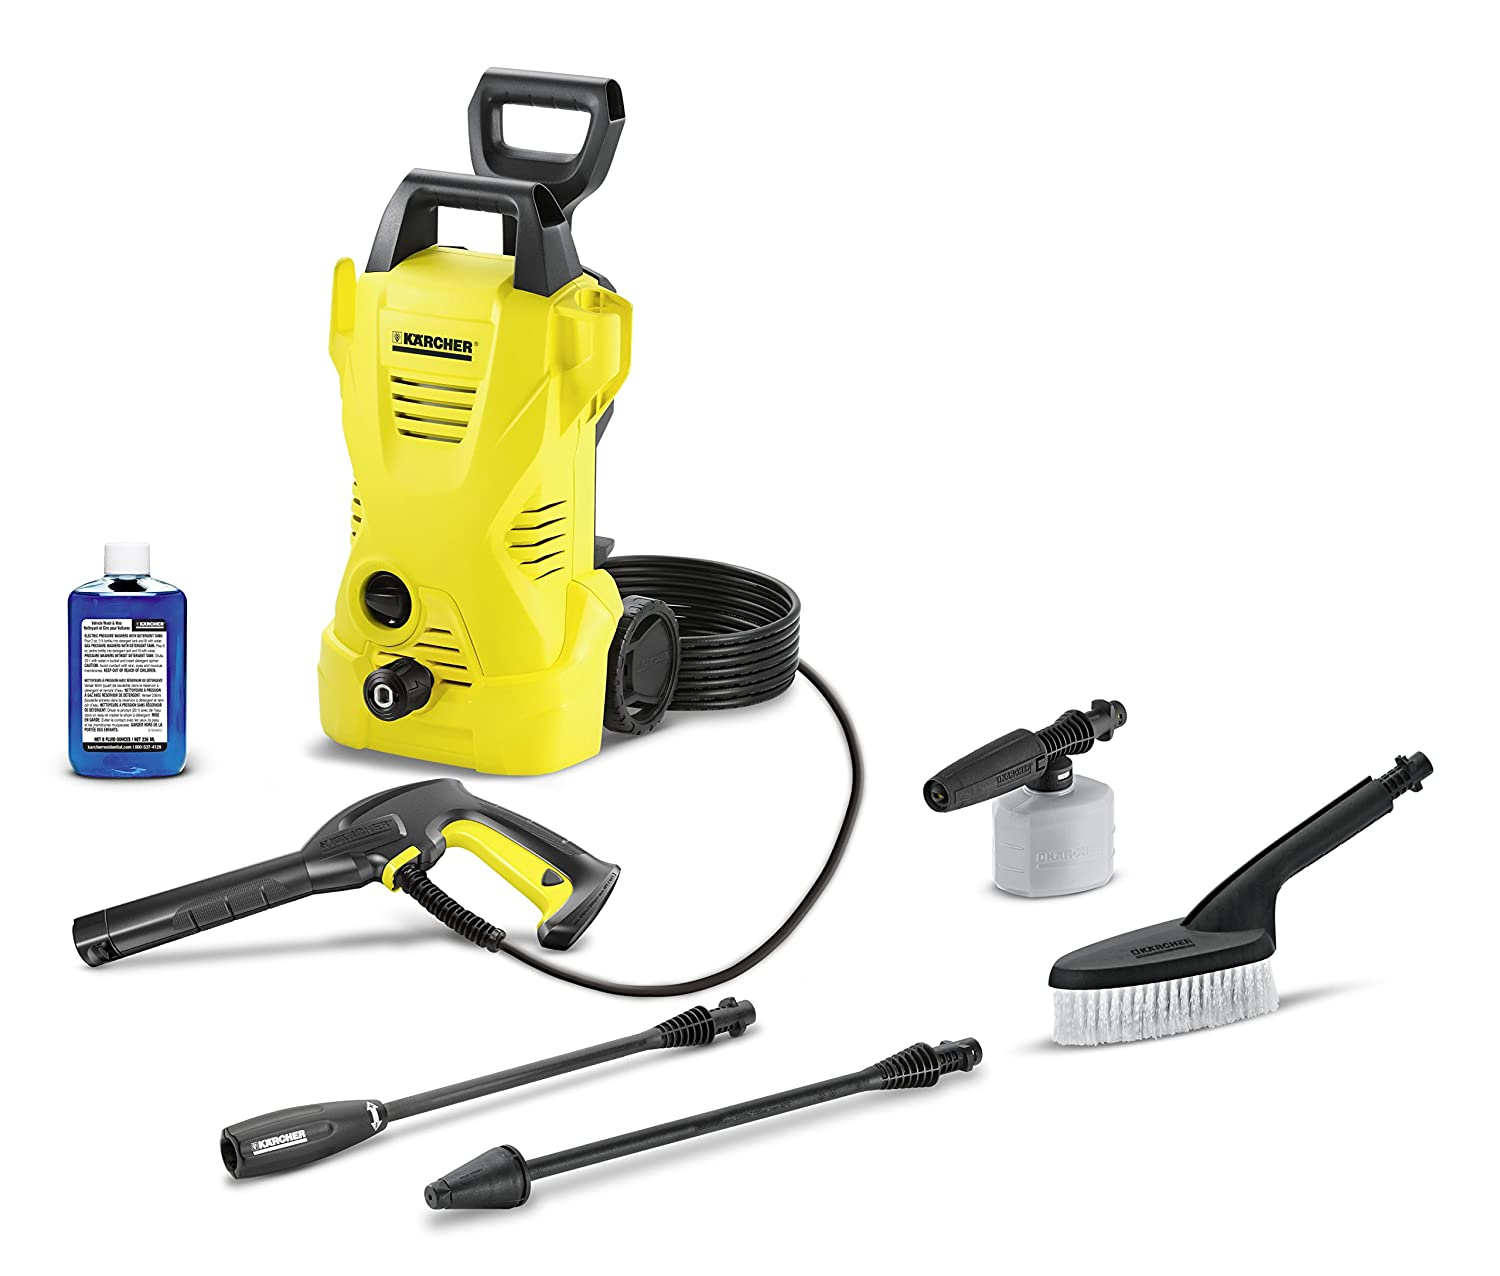 Amazon.com : Karcher K2 Car Care Kit Electric Power Pressure Washer, 1600  PSI, 1.25 GPM : Garden & Outdoor